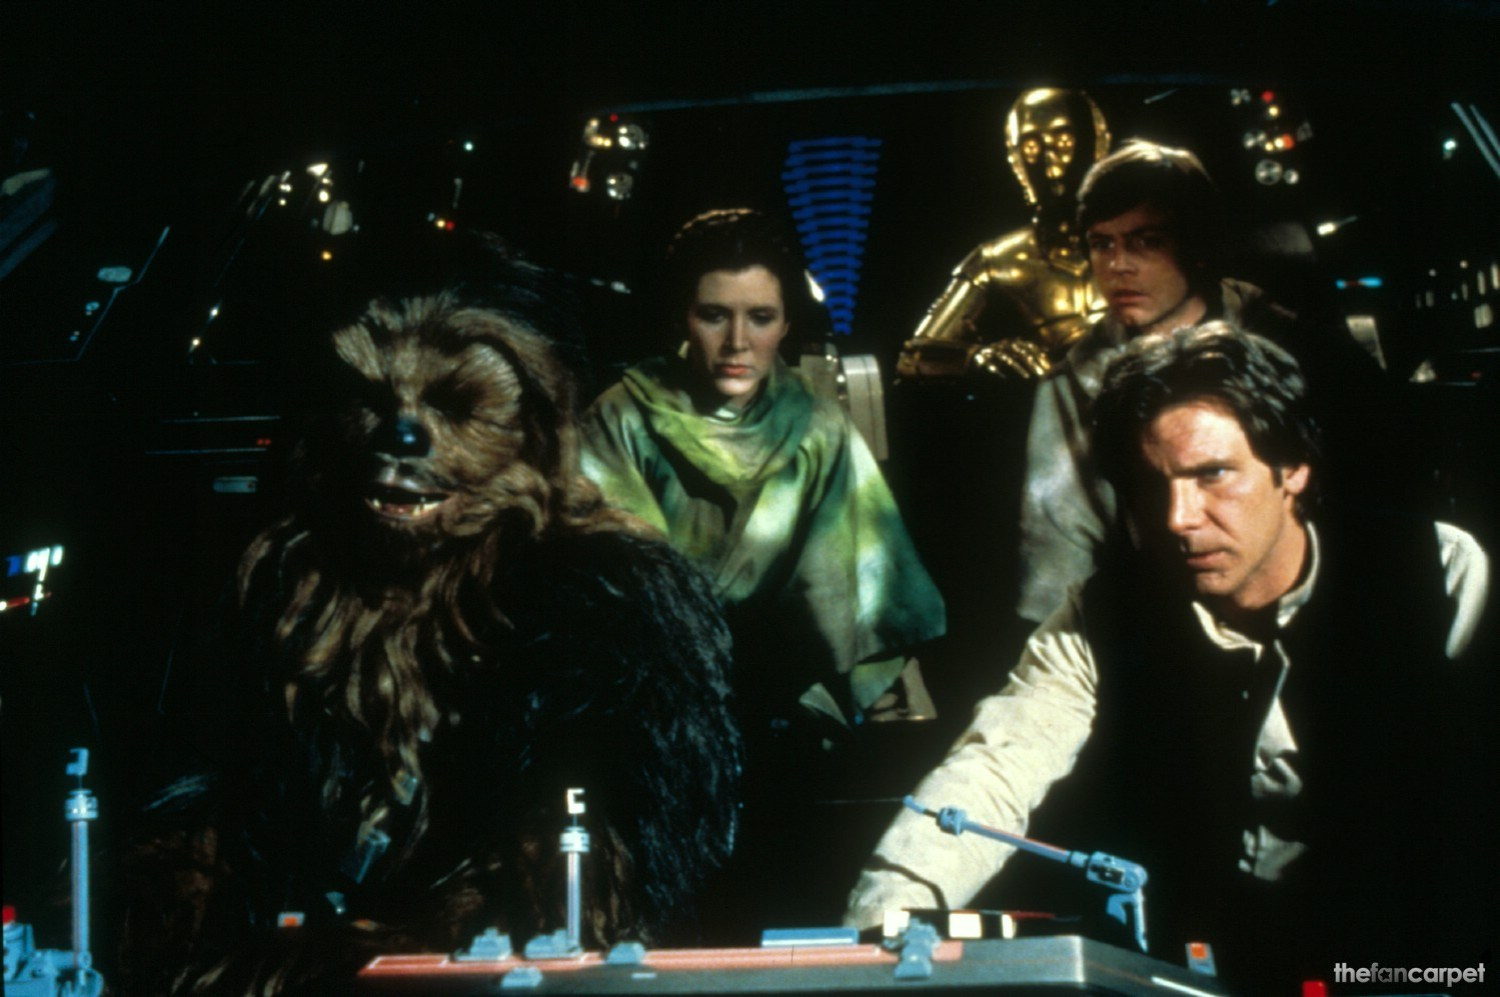 Anthony Daniels,Carrie Fisher,Harrison Ford,Mark Hamill,Peter Mayhew